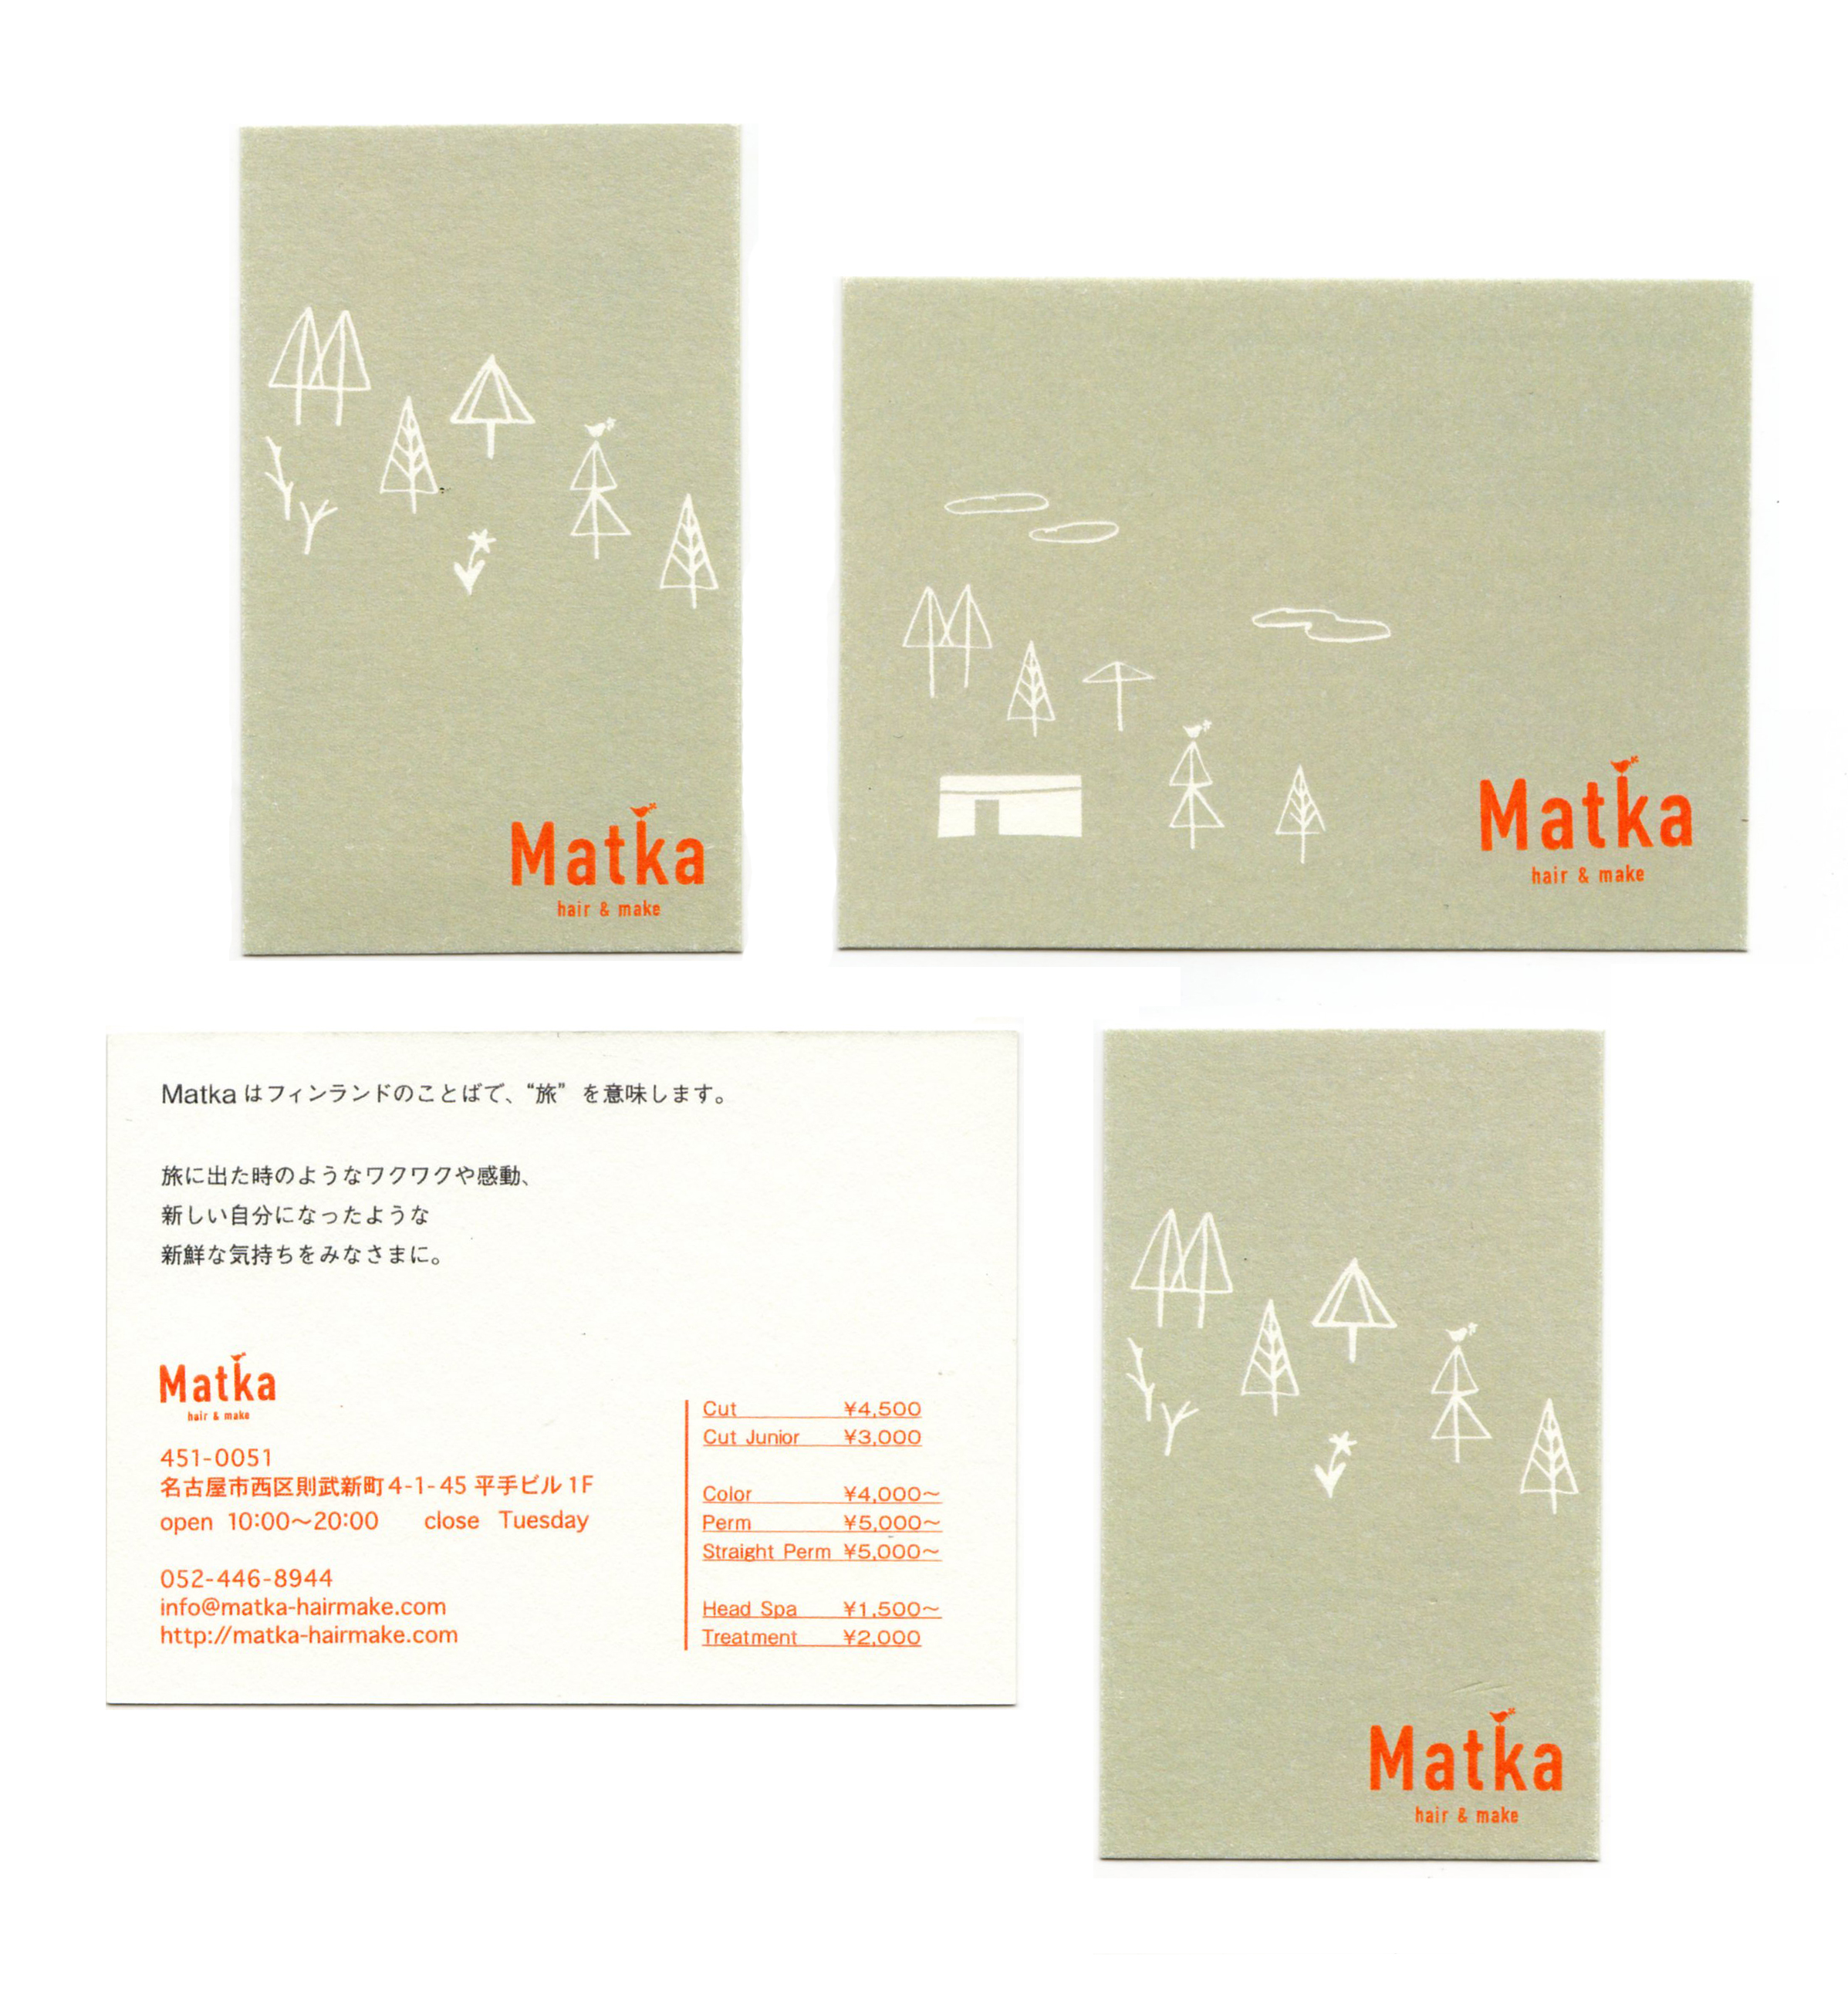 Matka Shopcard/Business card